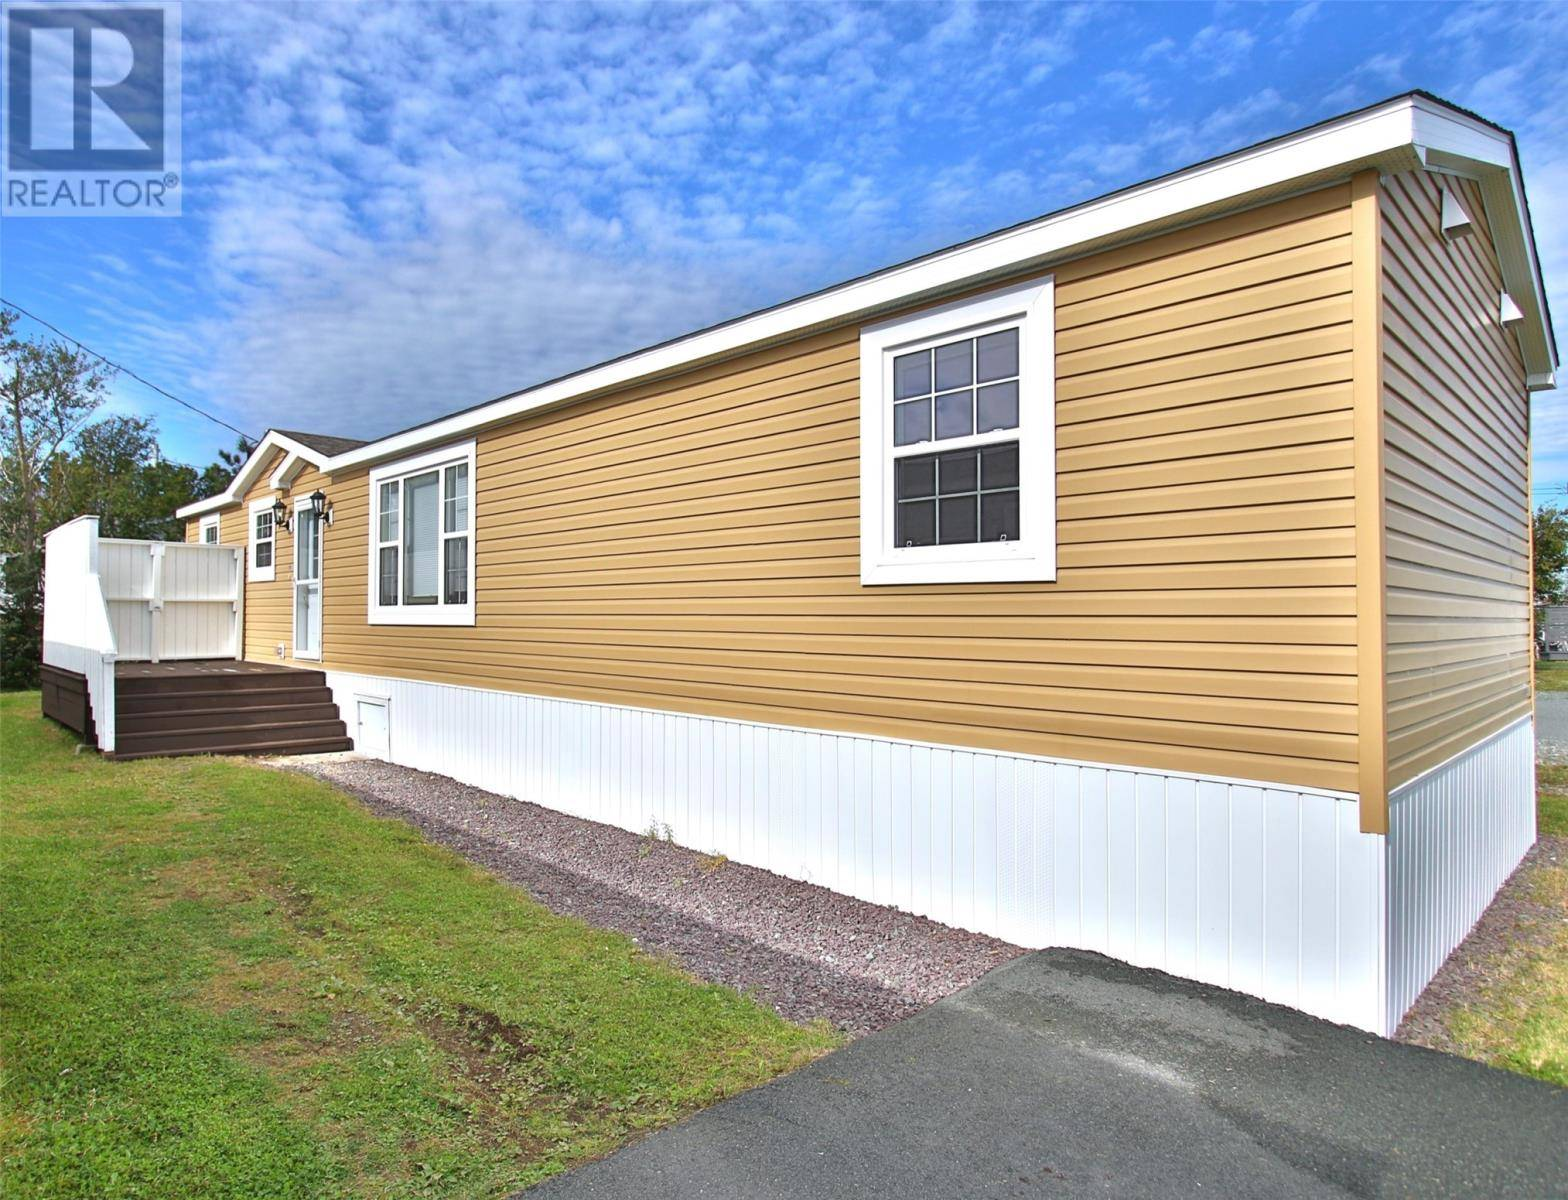 House for sale at 2 Rhaye Pl St. John's Newfoundland - MLS: 1209466